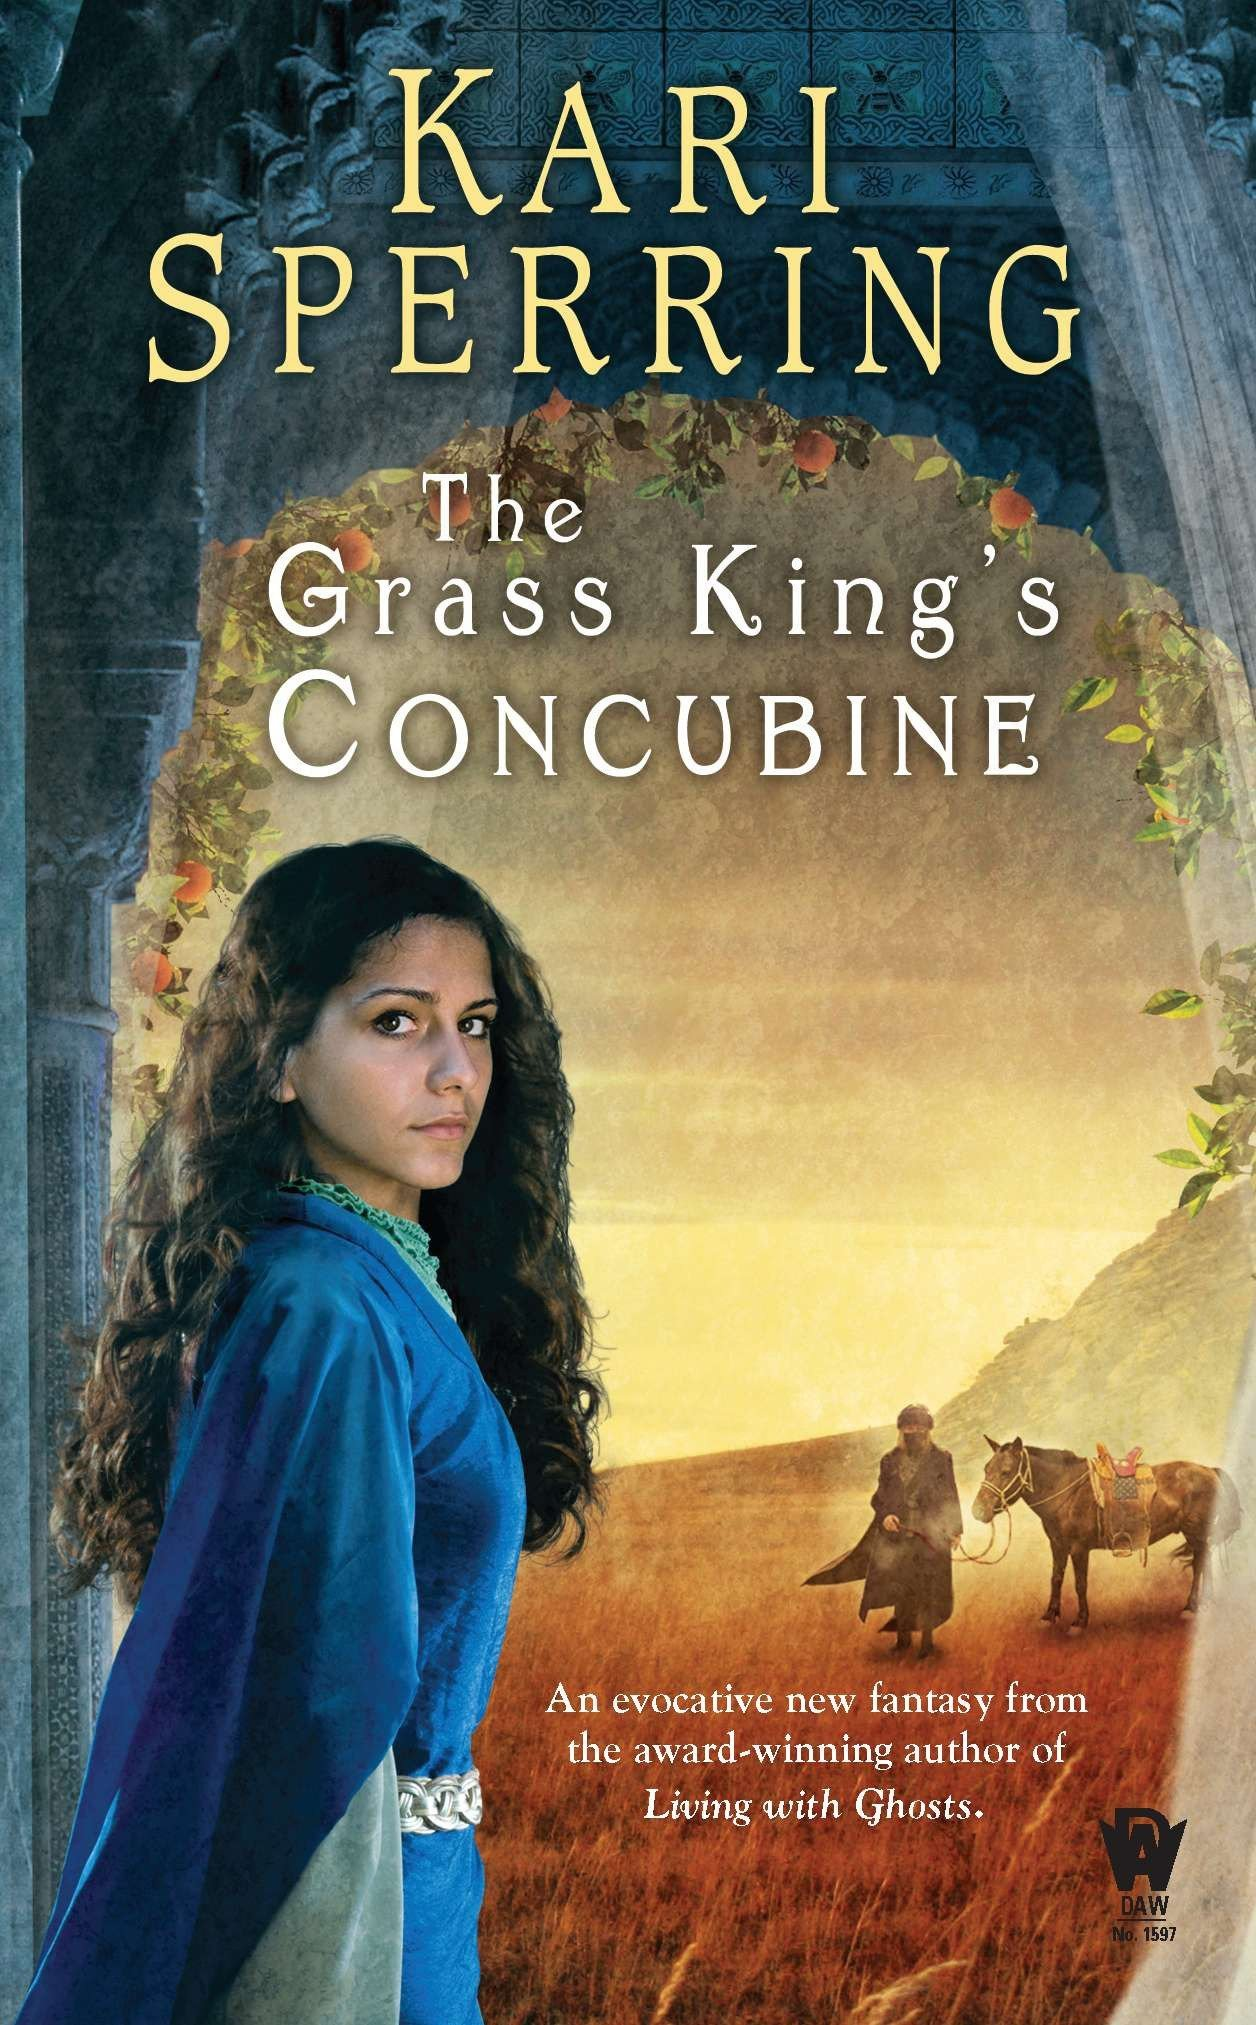 The Grass King's Concubine (Daw Books Collectors): Amazon.co.uk: Kari  Sperring: 9780756407551: Books